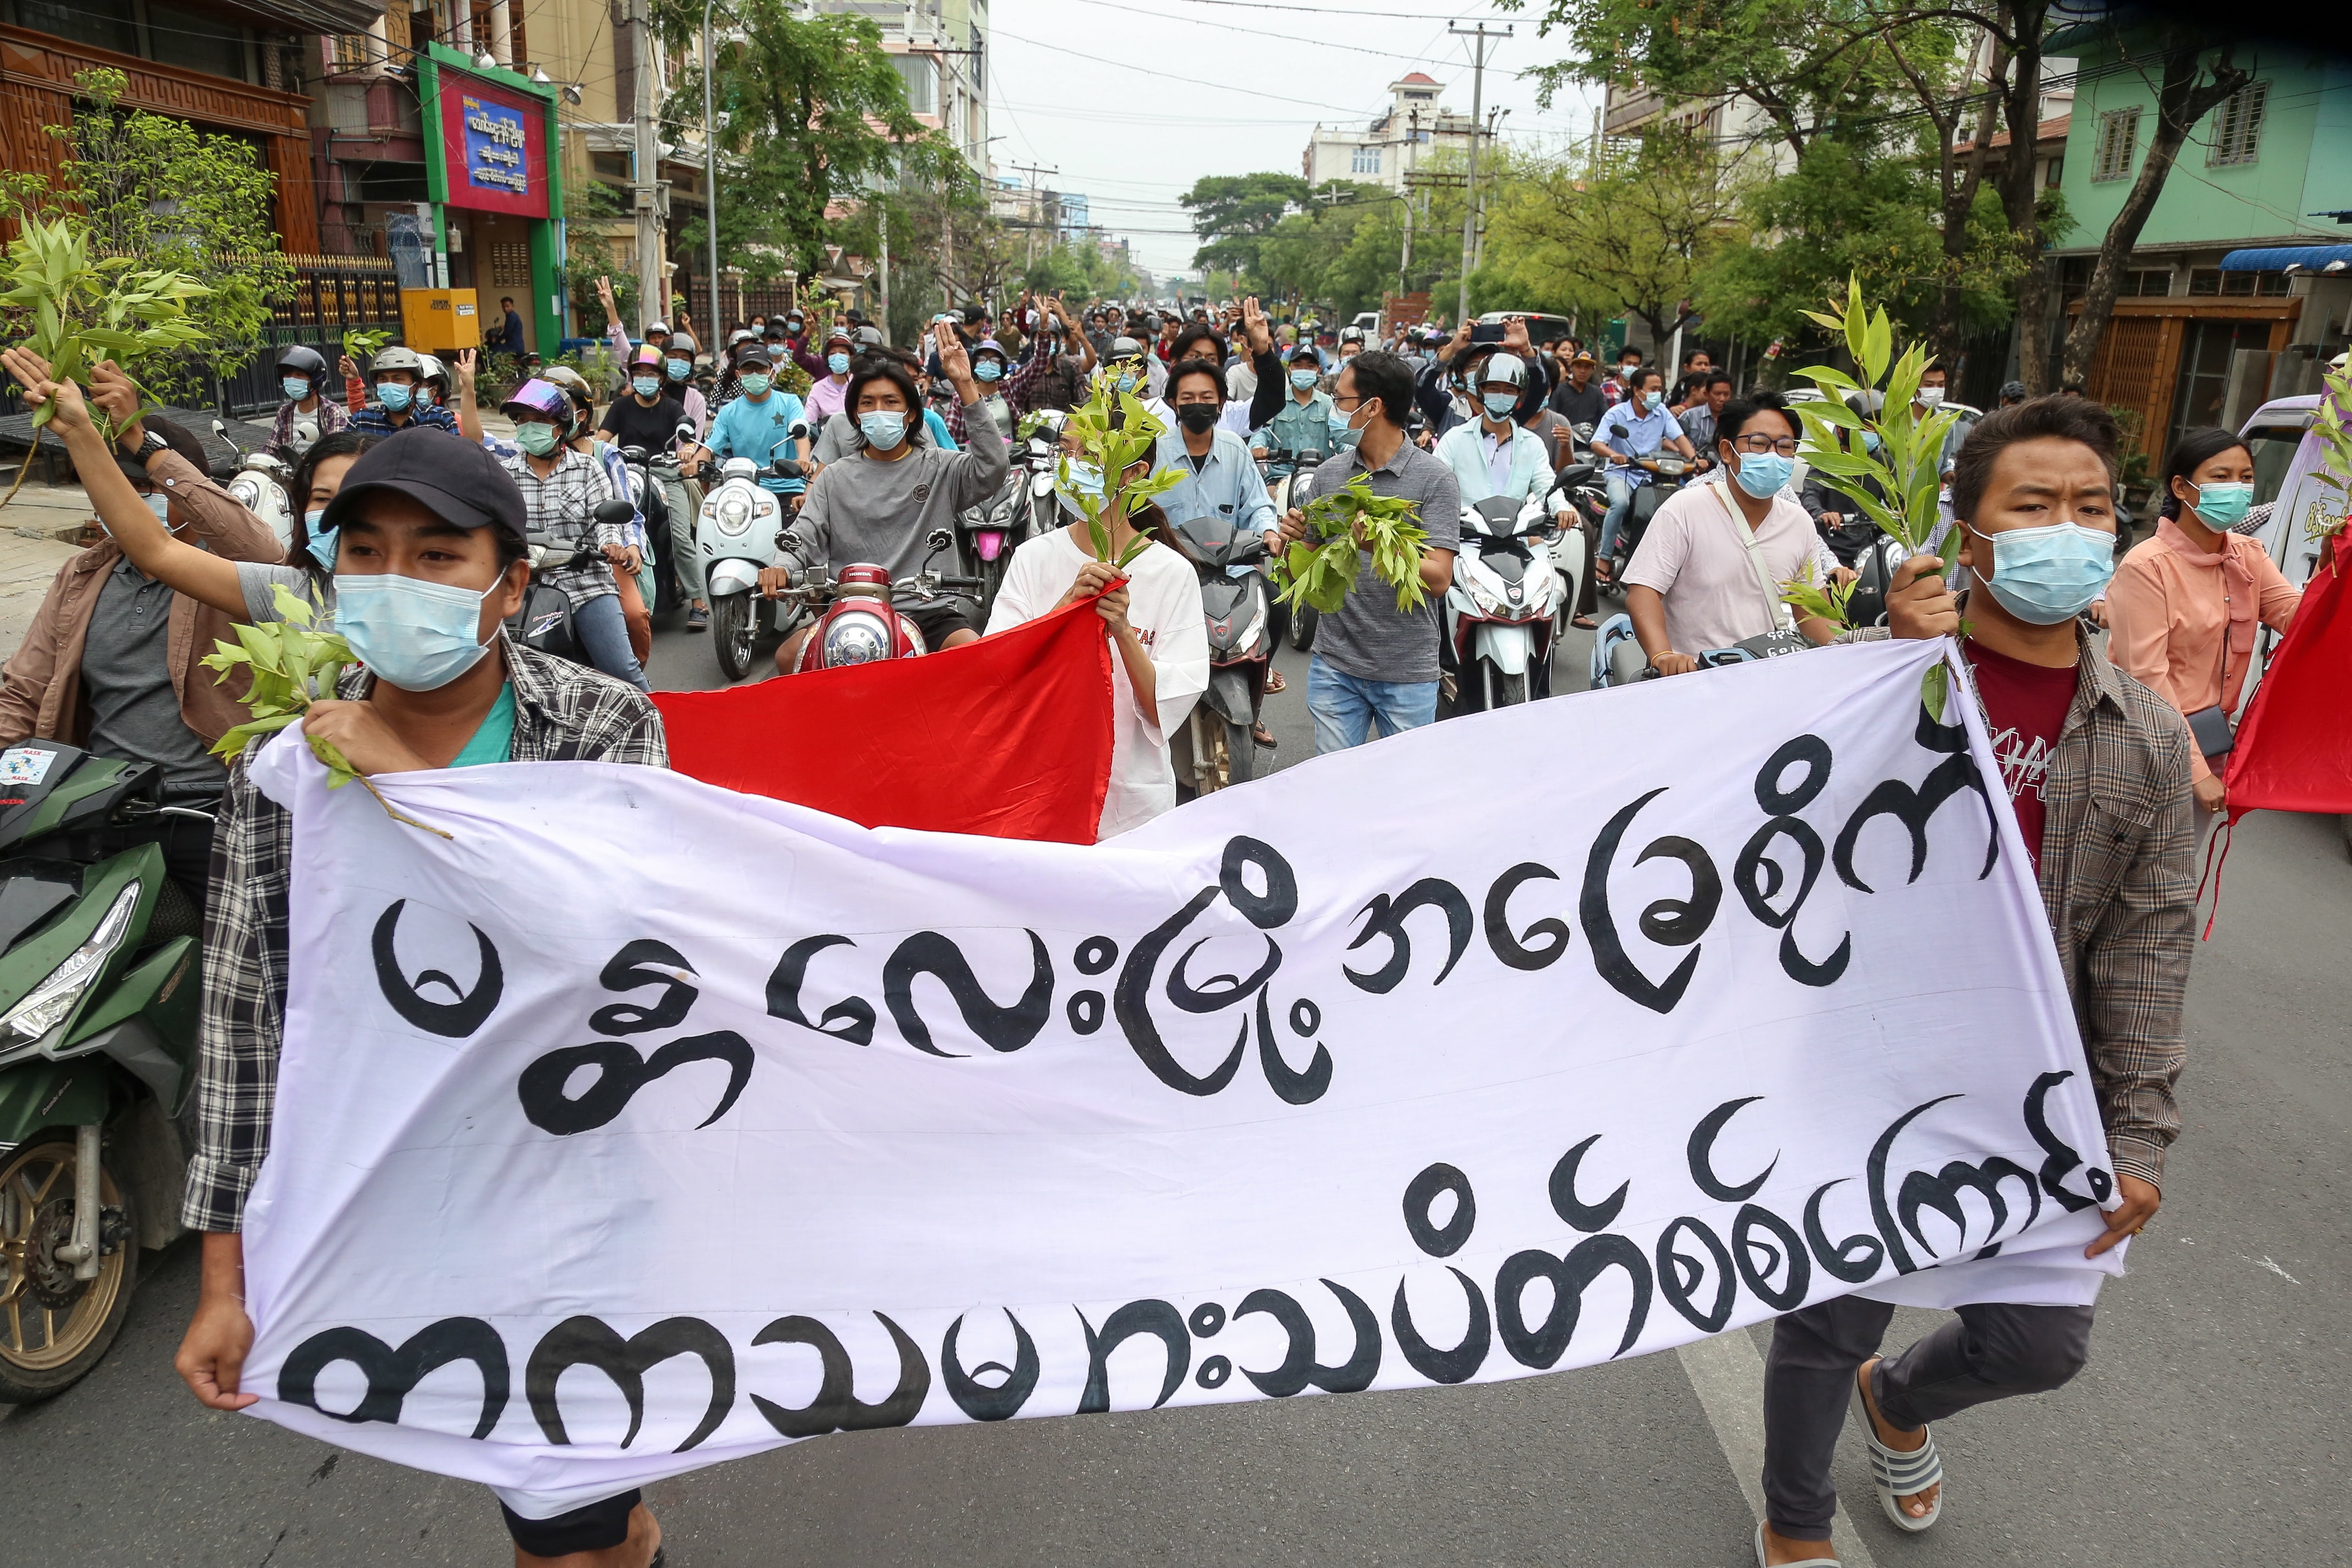 Demonstrators carry a banner during an anti-military coup protest in Mandalay, Myanmar, on 17 April, 2021.